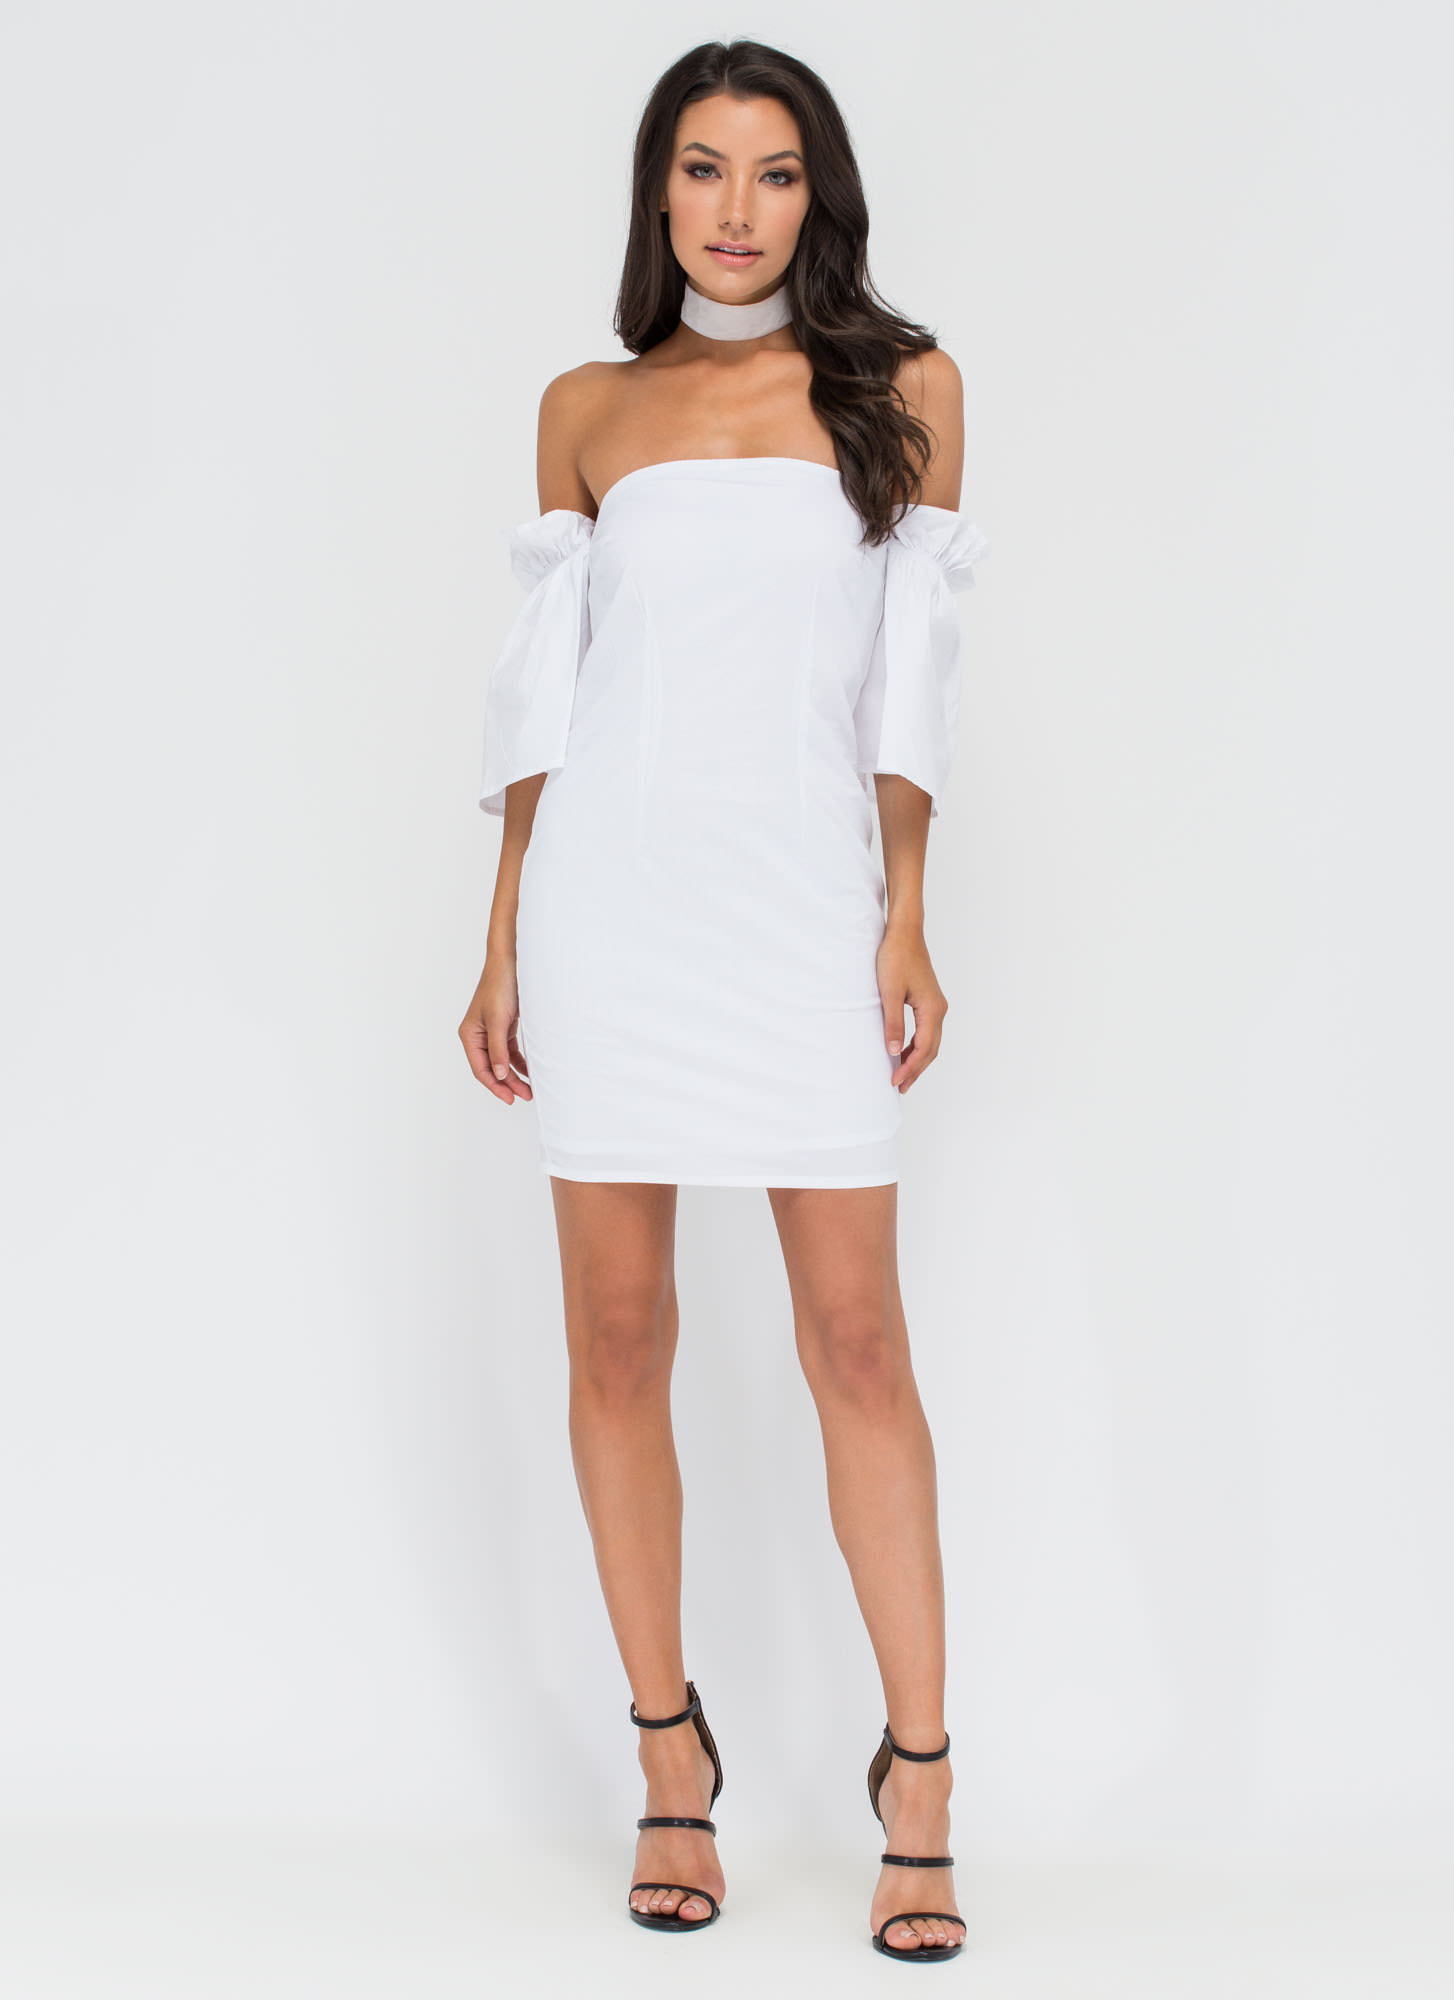 Breezy Day Off-Shoulder Ruffled Dress WHITE